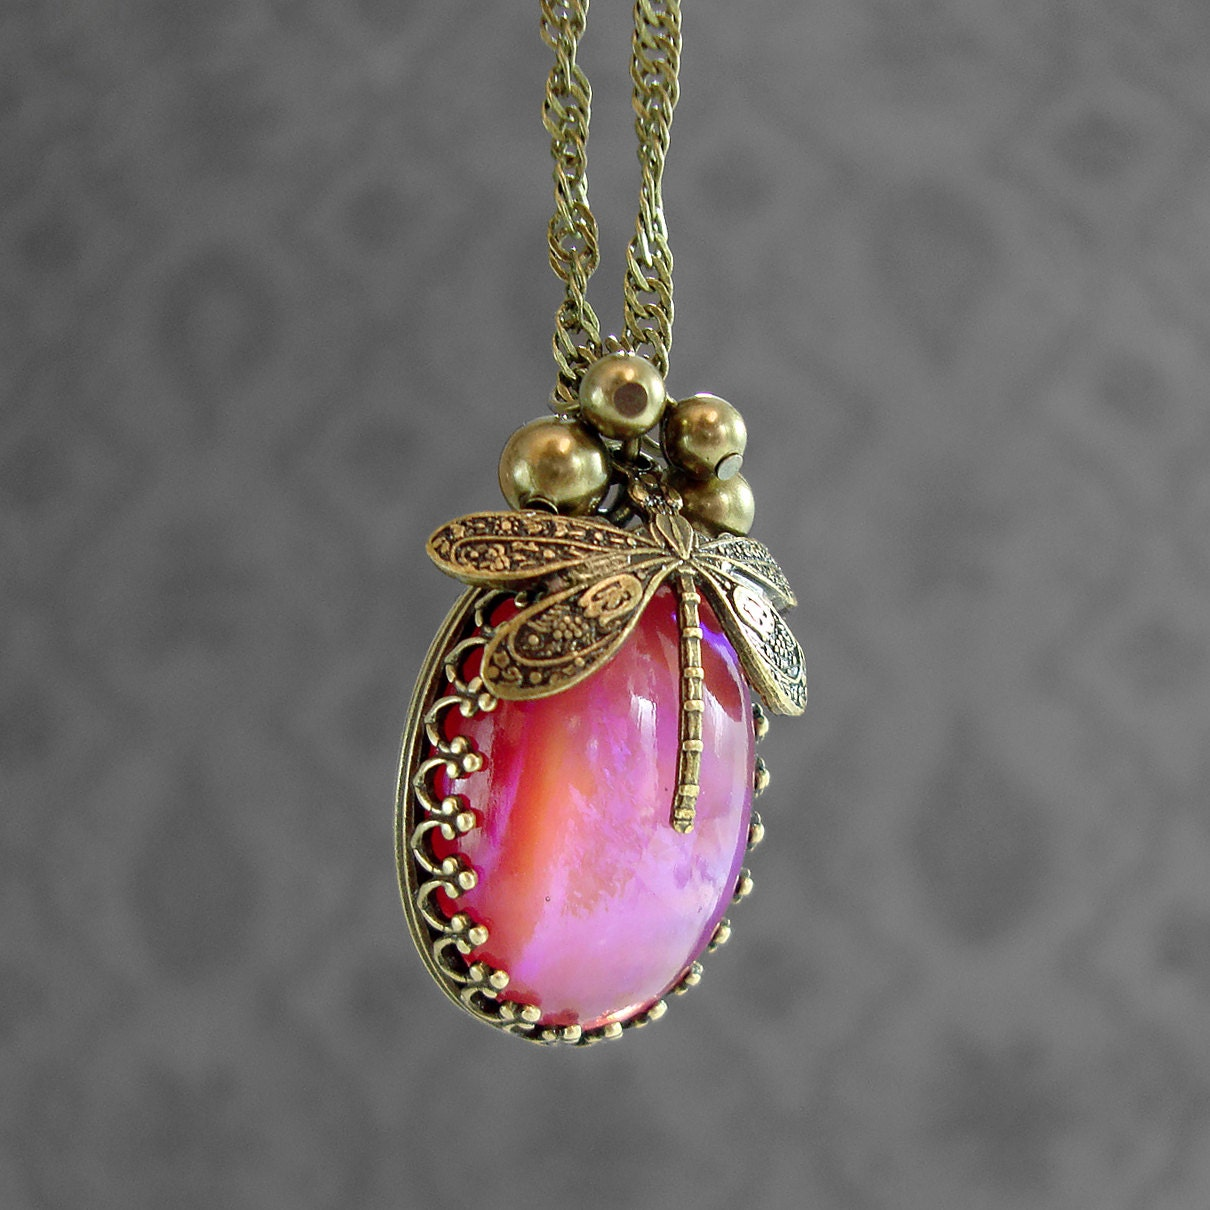 pink moonstone jewelry vintage - photo #21